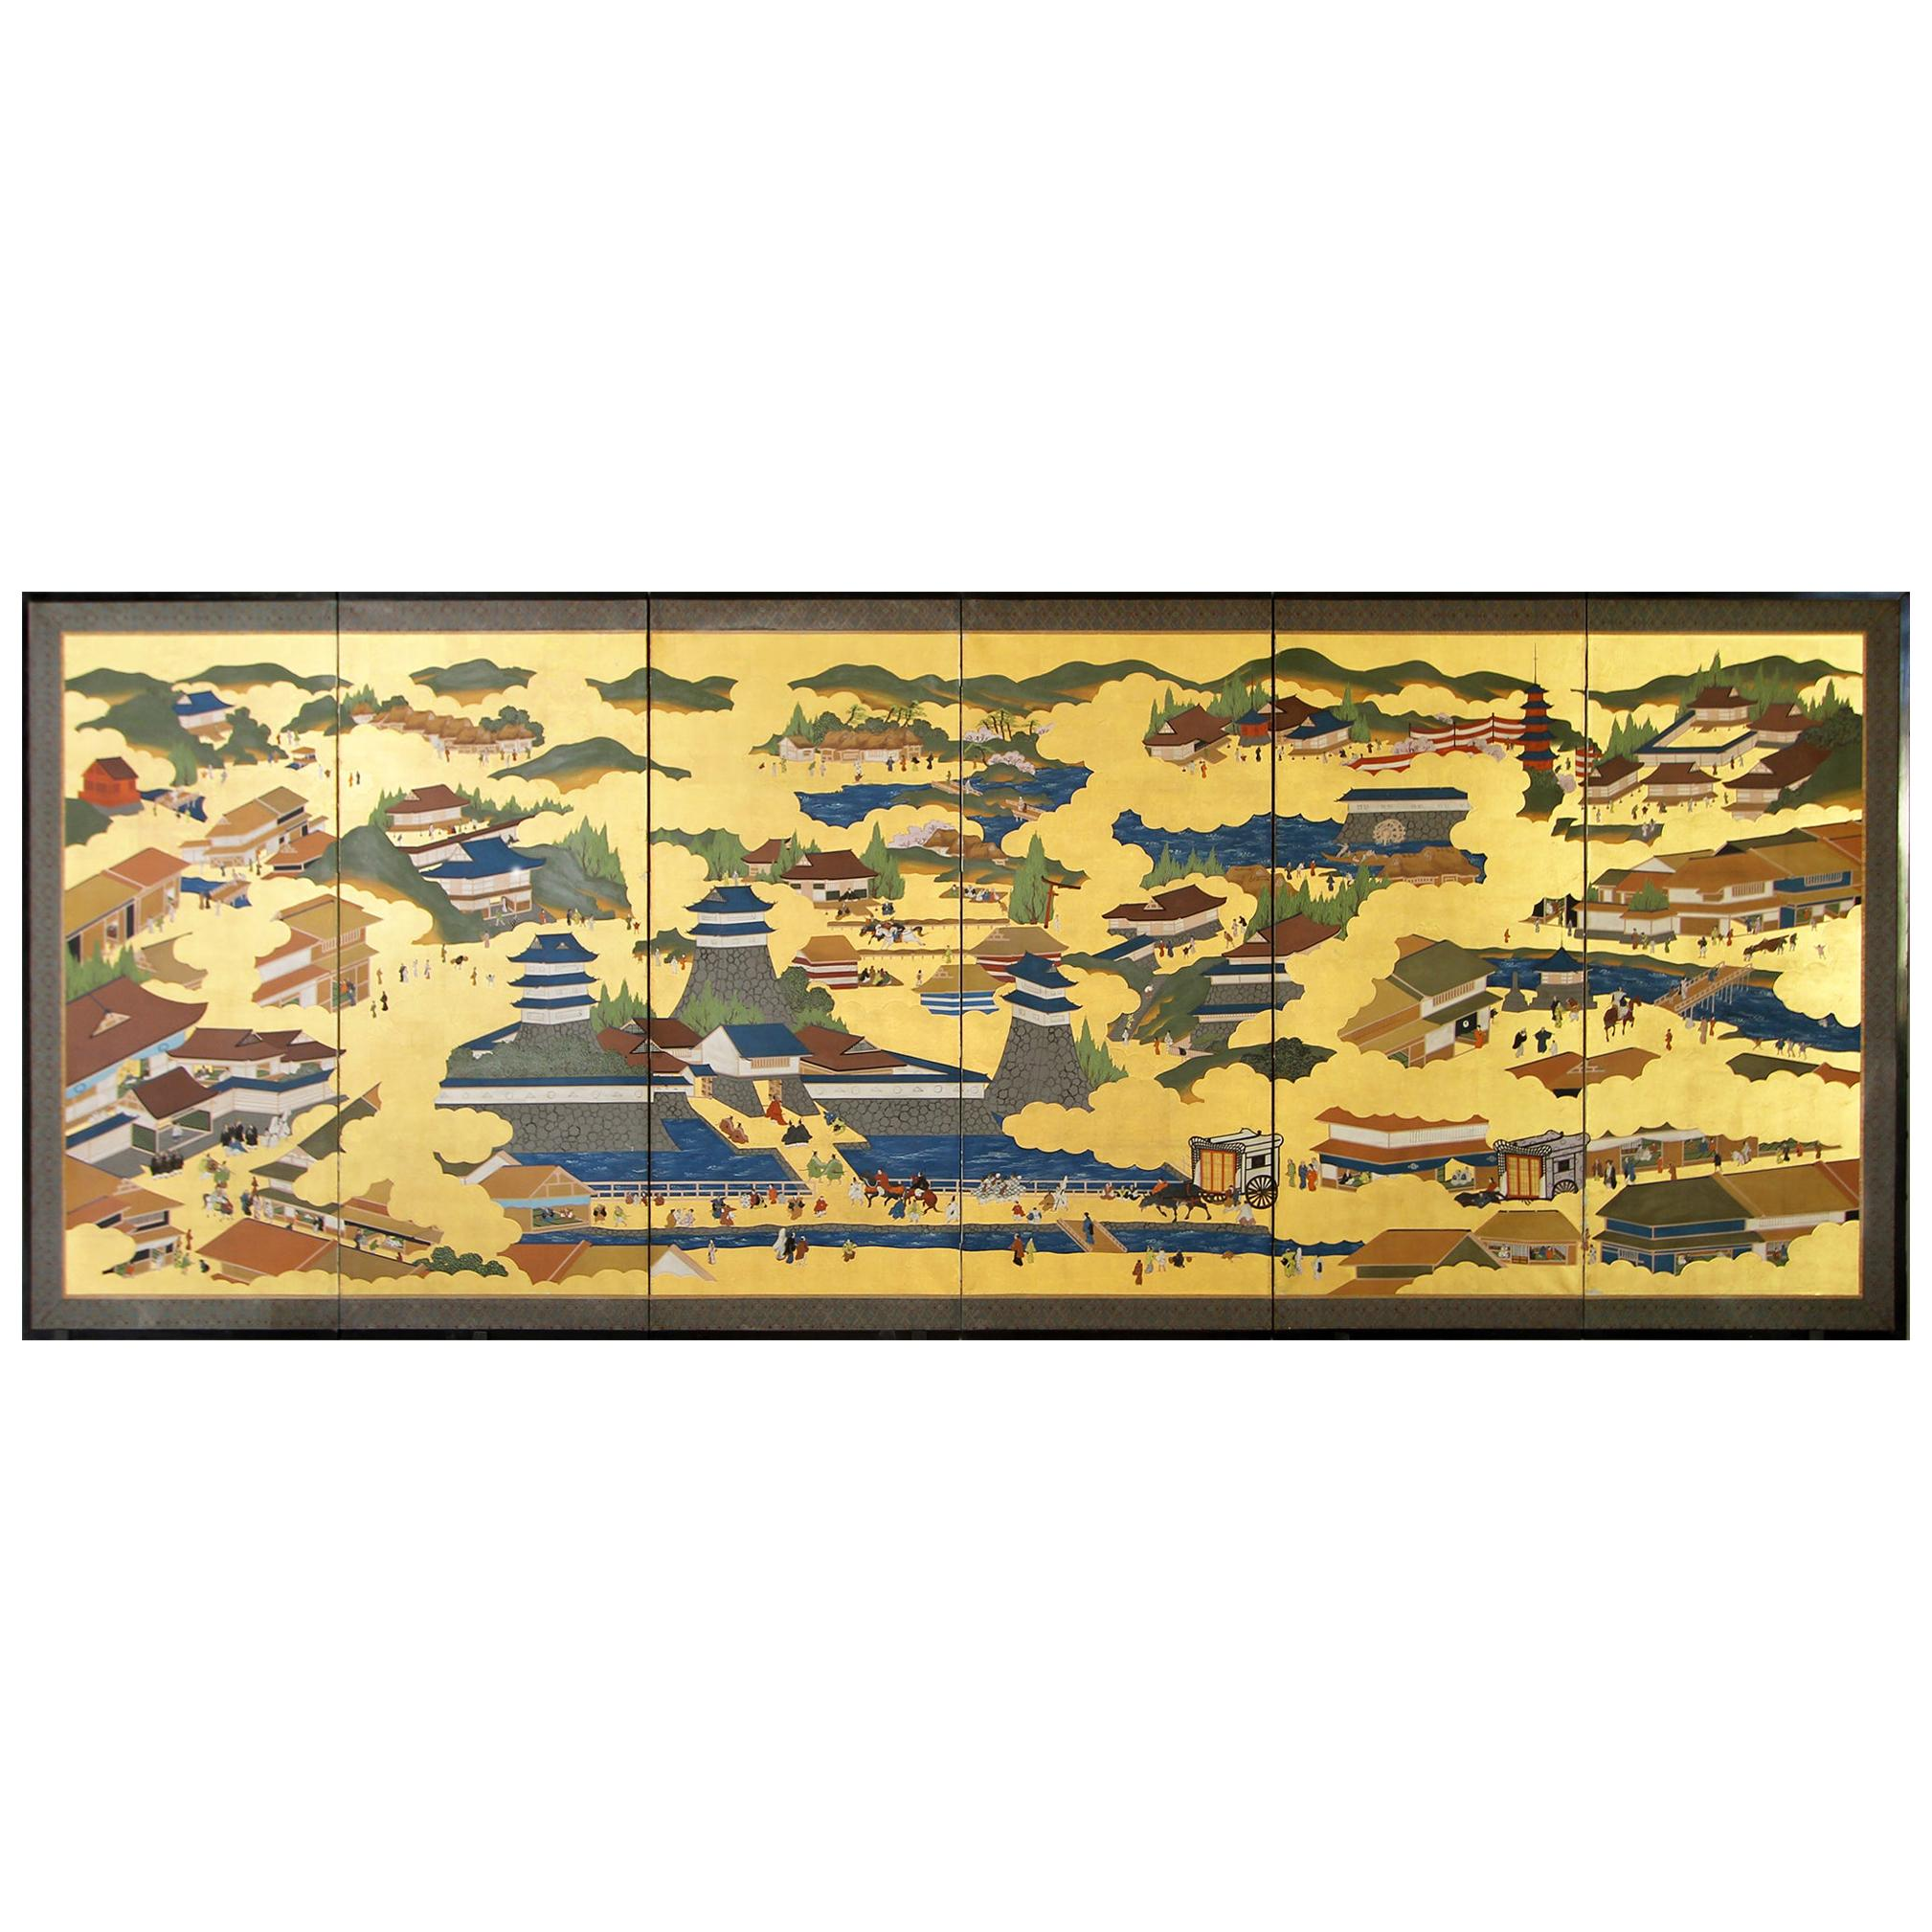 Japanese Landscape of Kyoto - Six Panel Folding Screen Hand Painted on Gold Leaf